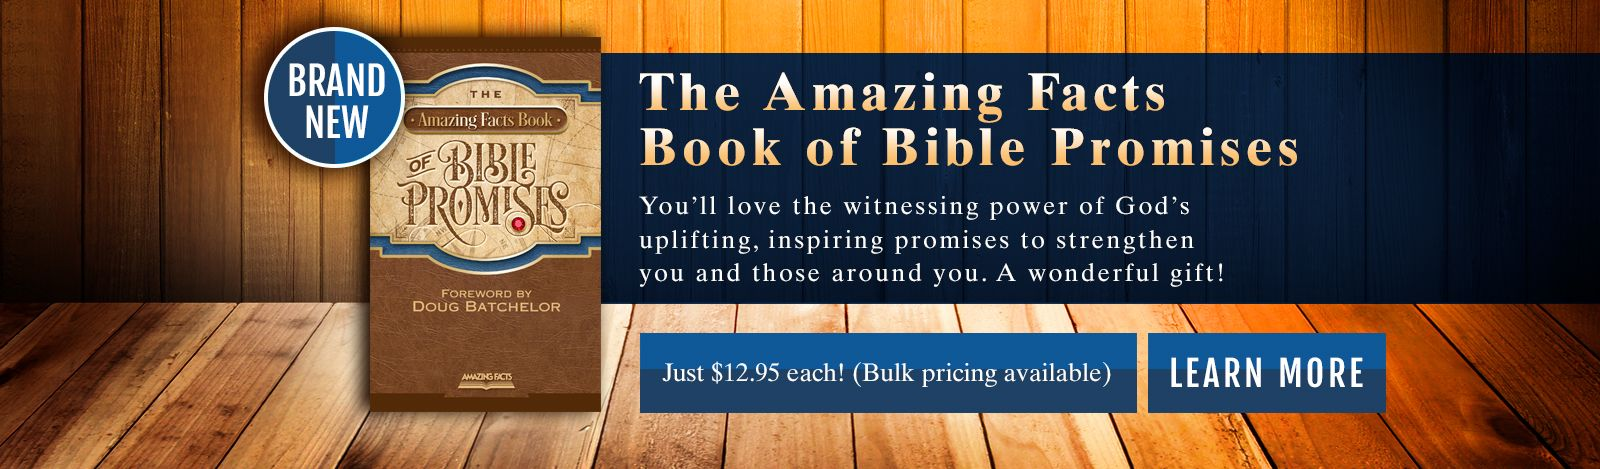 Book of Bible Promises